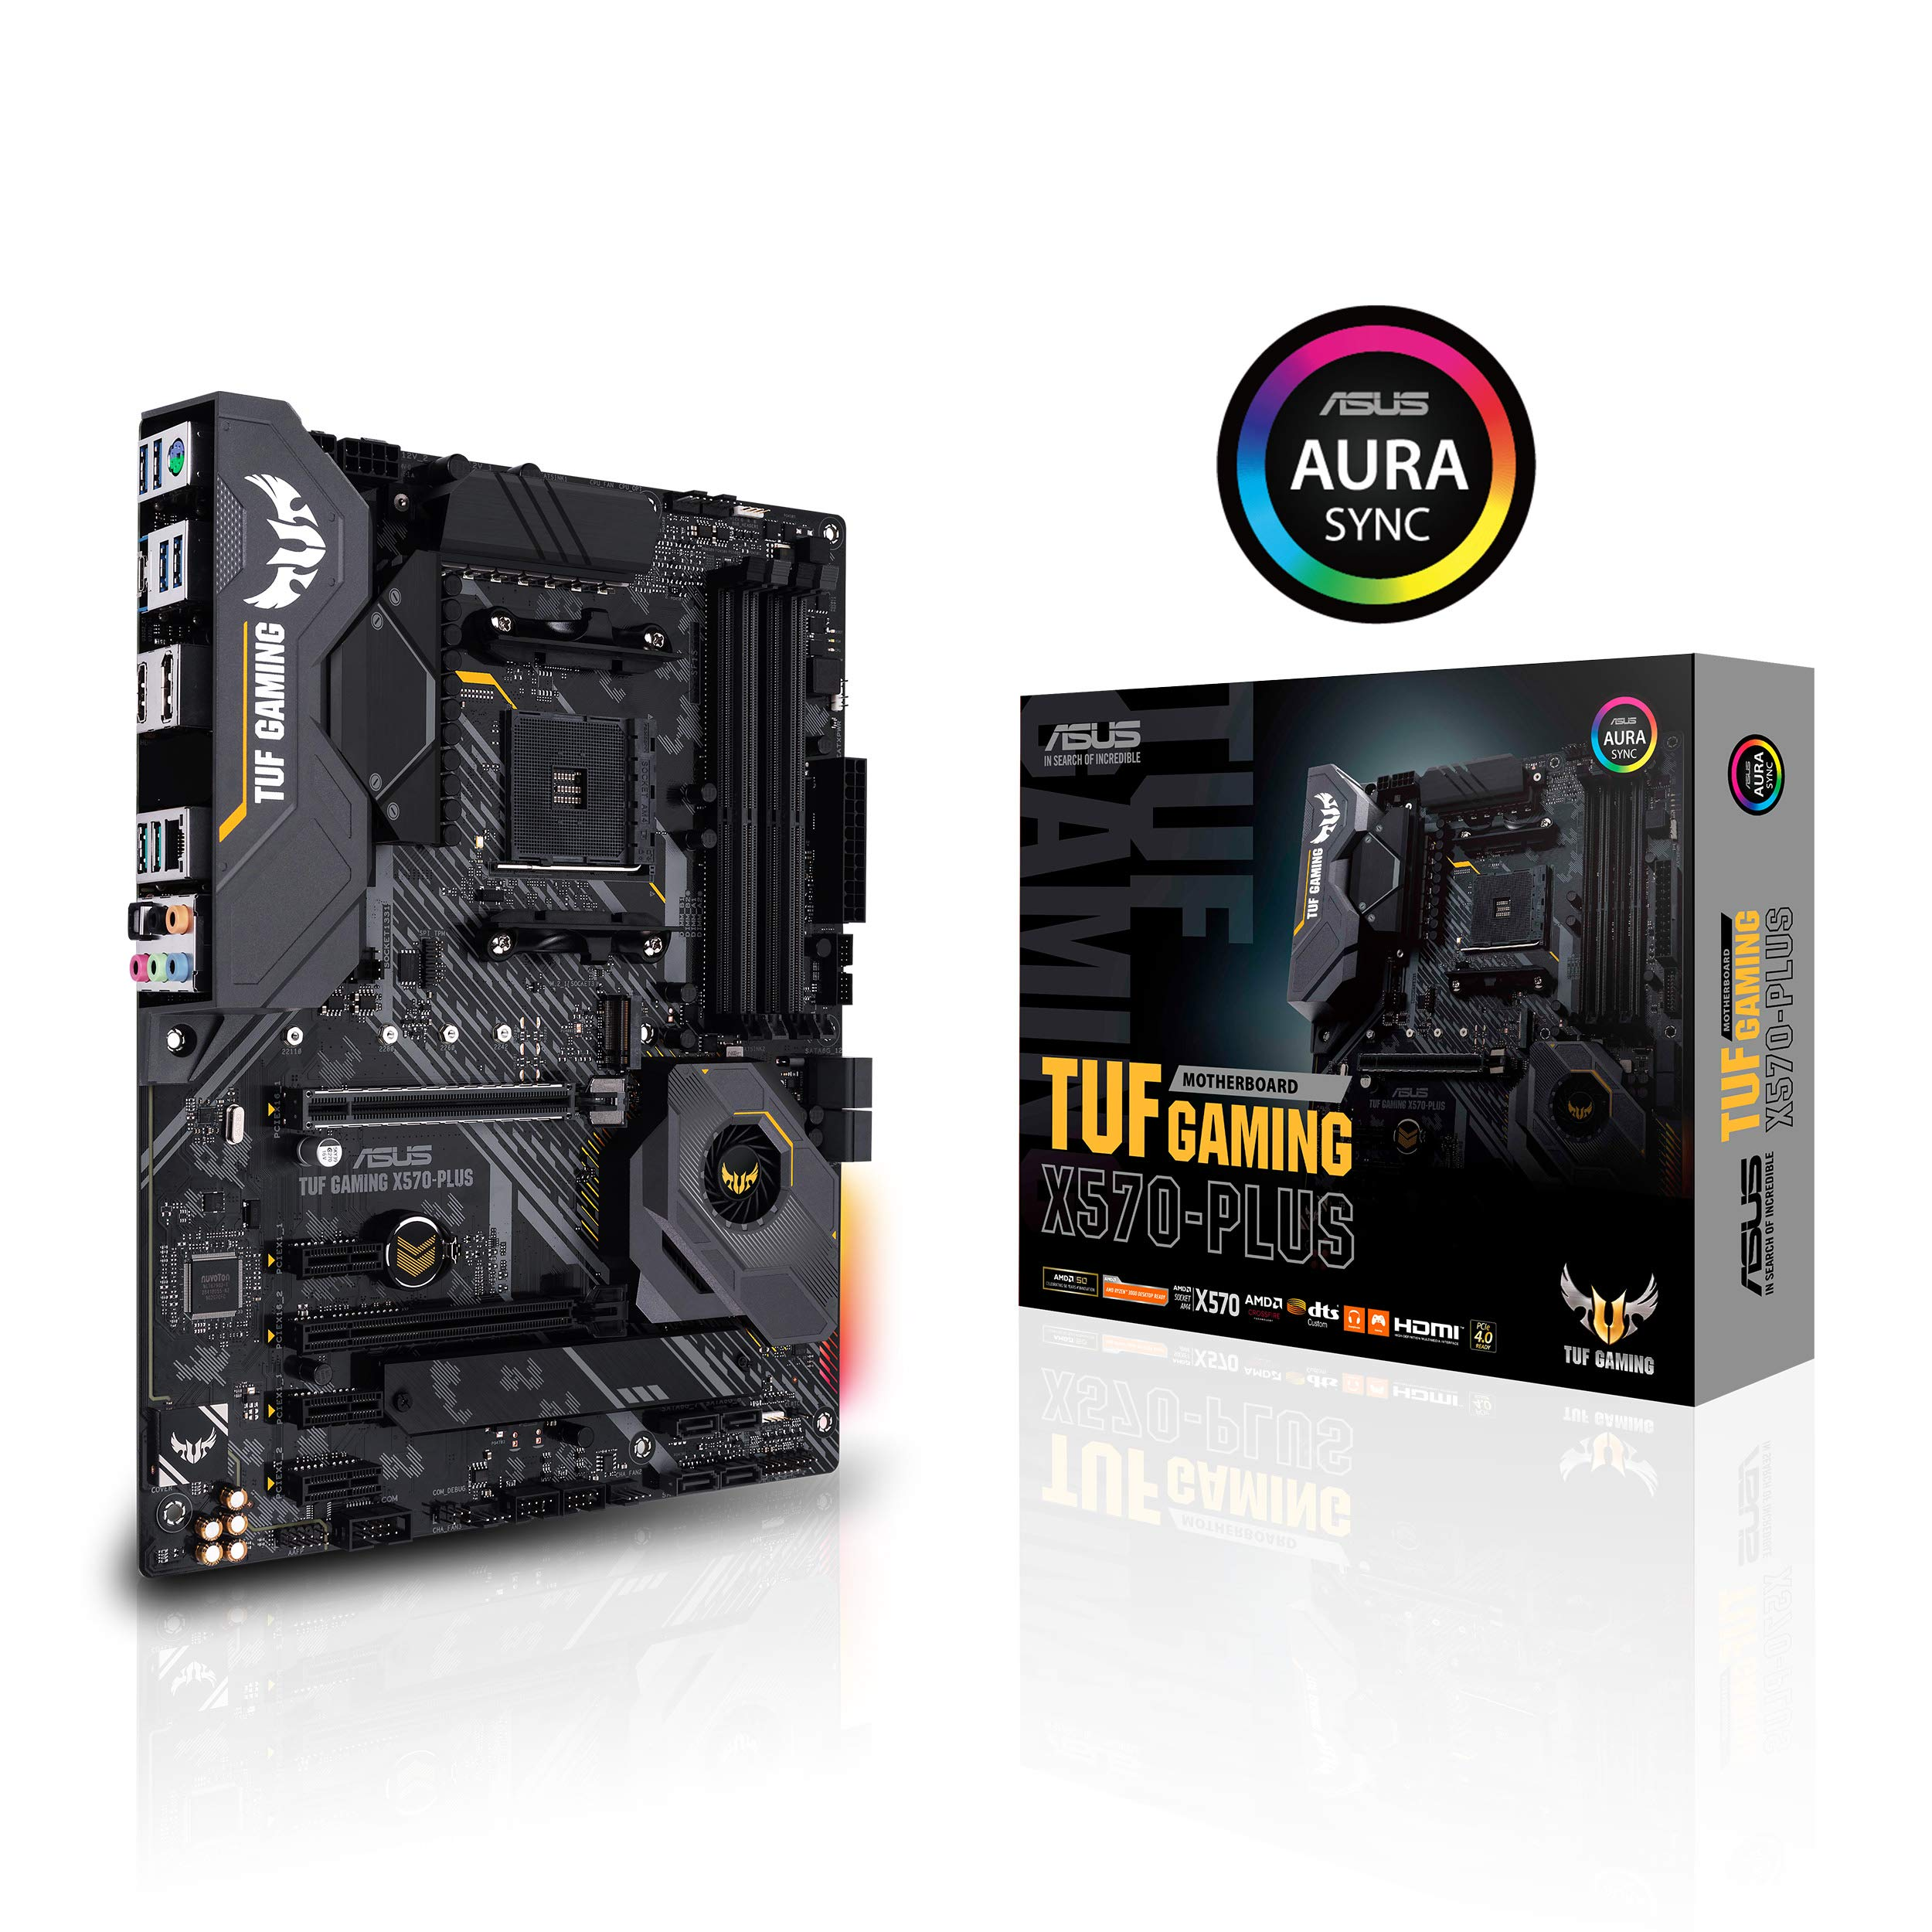 ASUS AM4 TUF Gaming X570-Plus ATX Motherboard with PCIe 4.0, Dual M.2, 12+2 with Dr. MOS Power Stage, HDMI, DP, SATA 6Gb/s, USB 3.2 Gen 2 and Aura Sync RGB Lighting by ASUS